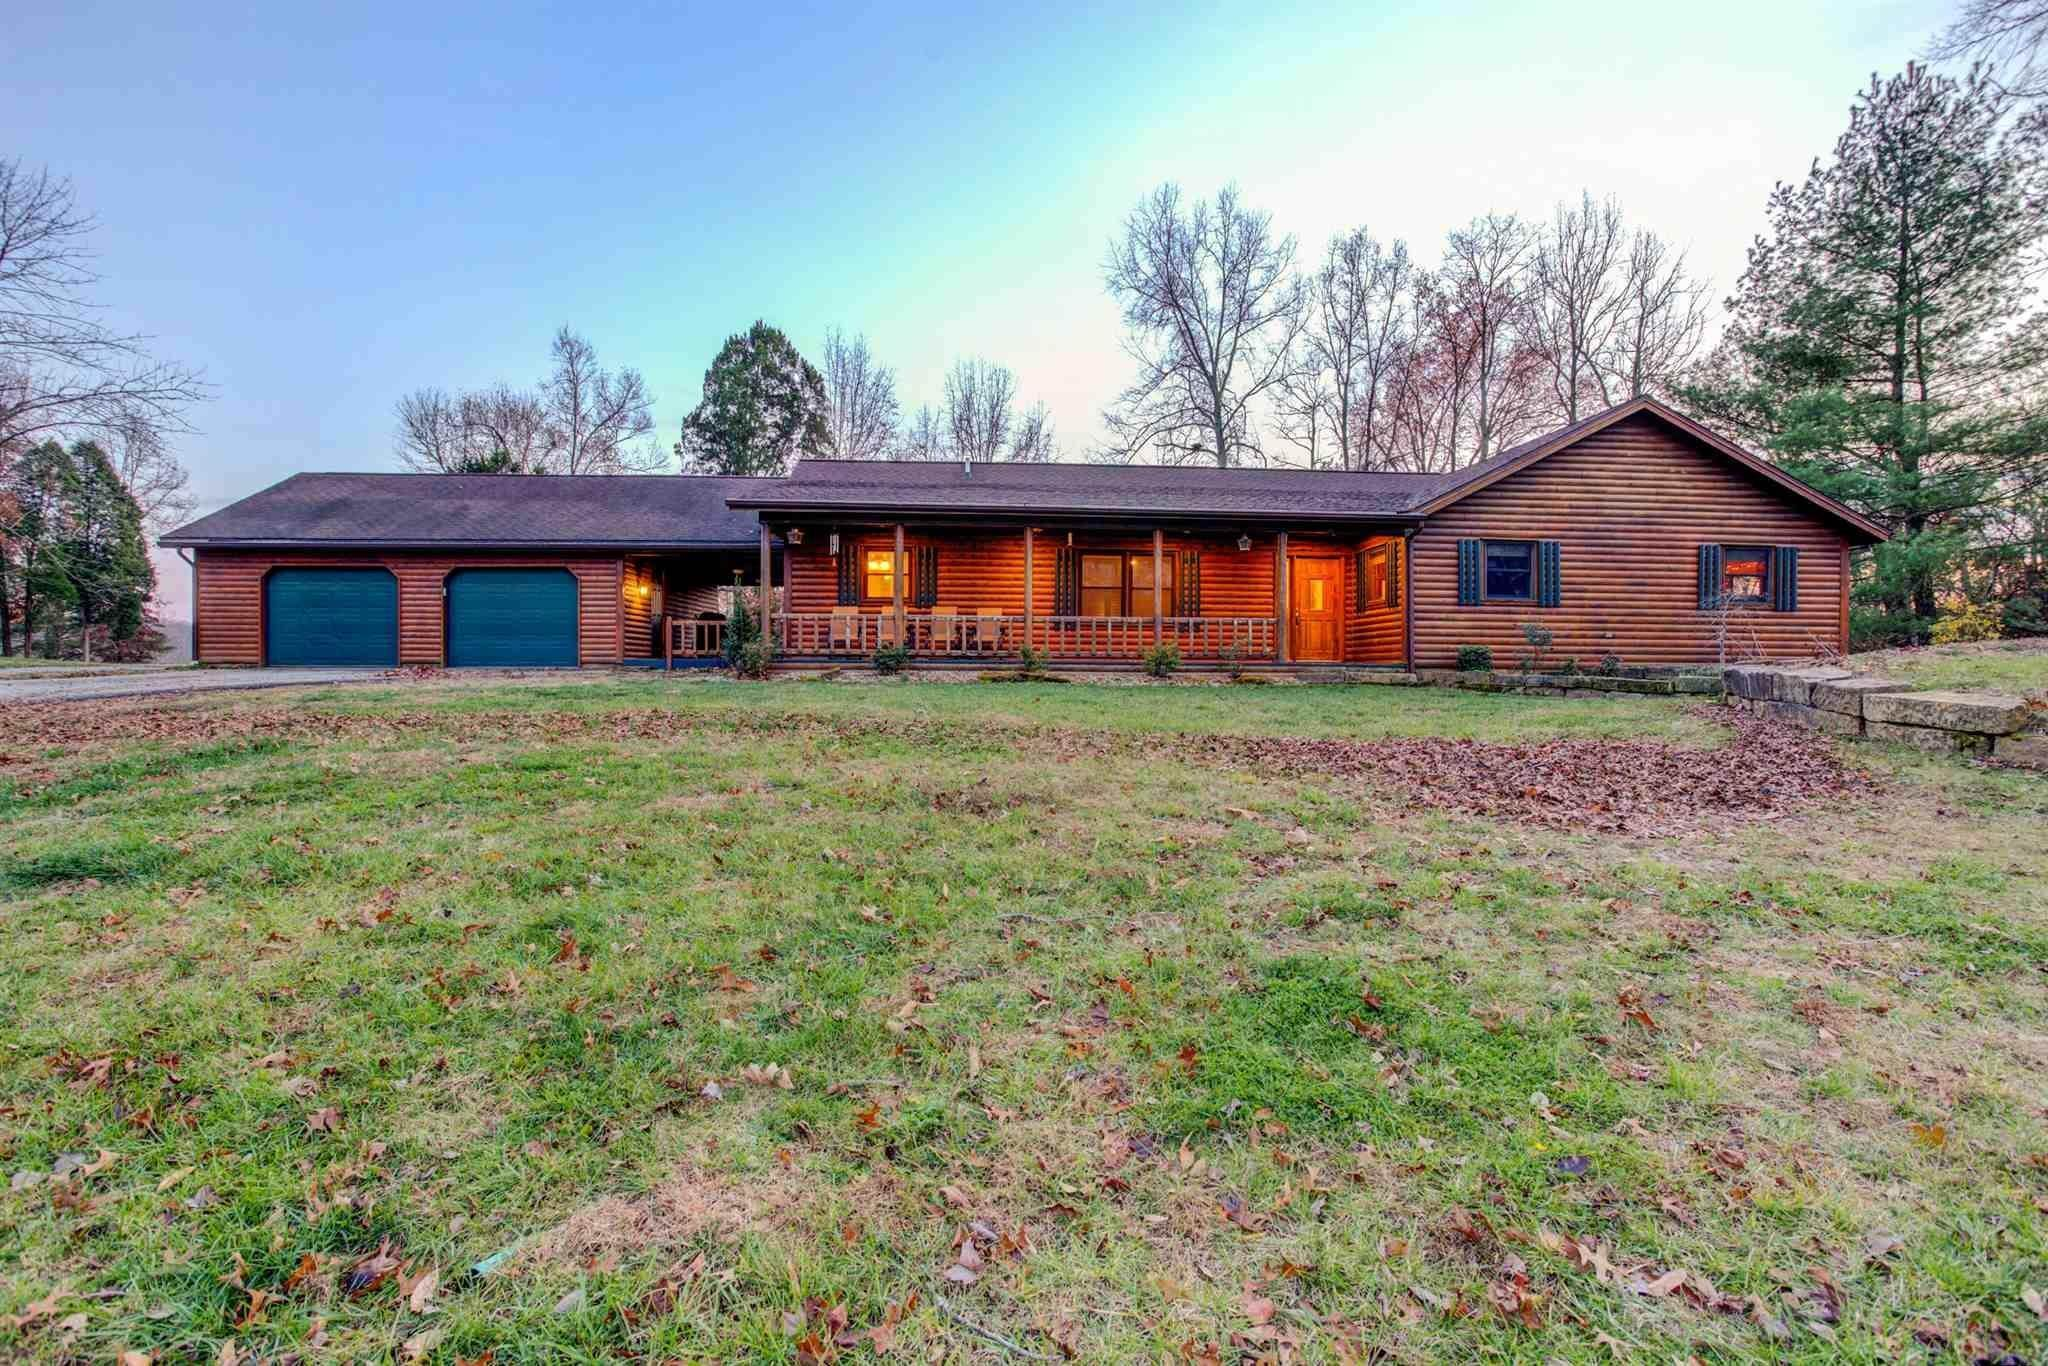 Single Family Homes for Sale at 385 W Evergreen Plaza Santa Claus, Indiana 47579 United States